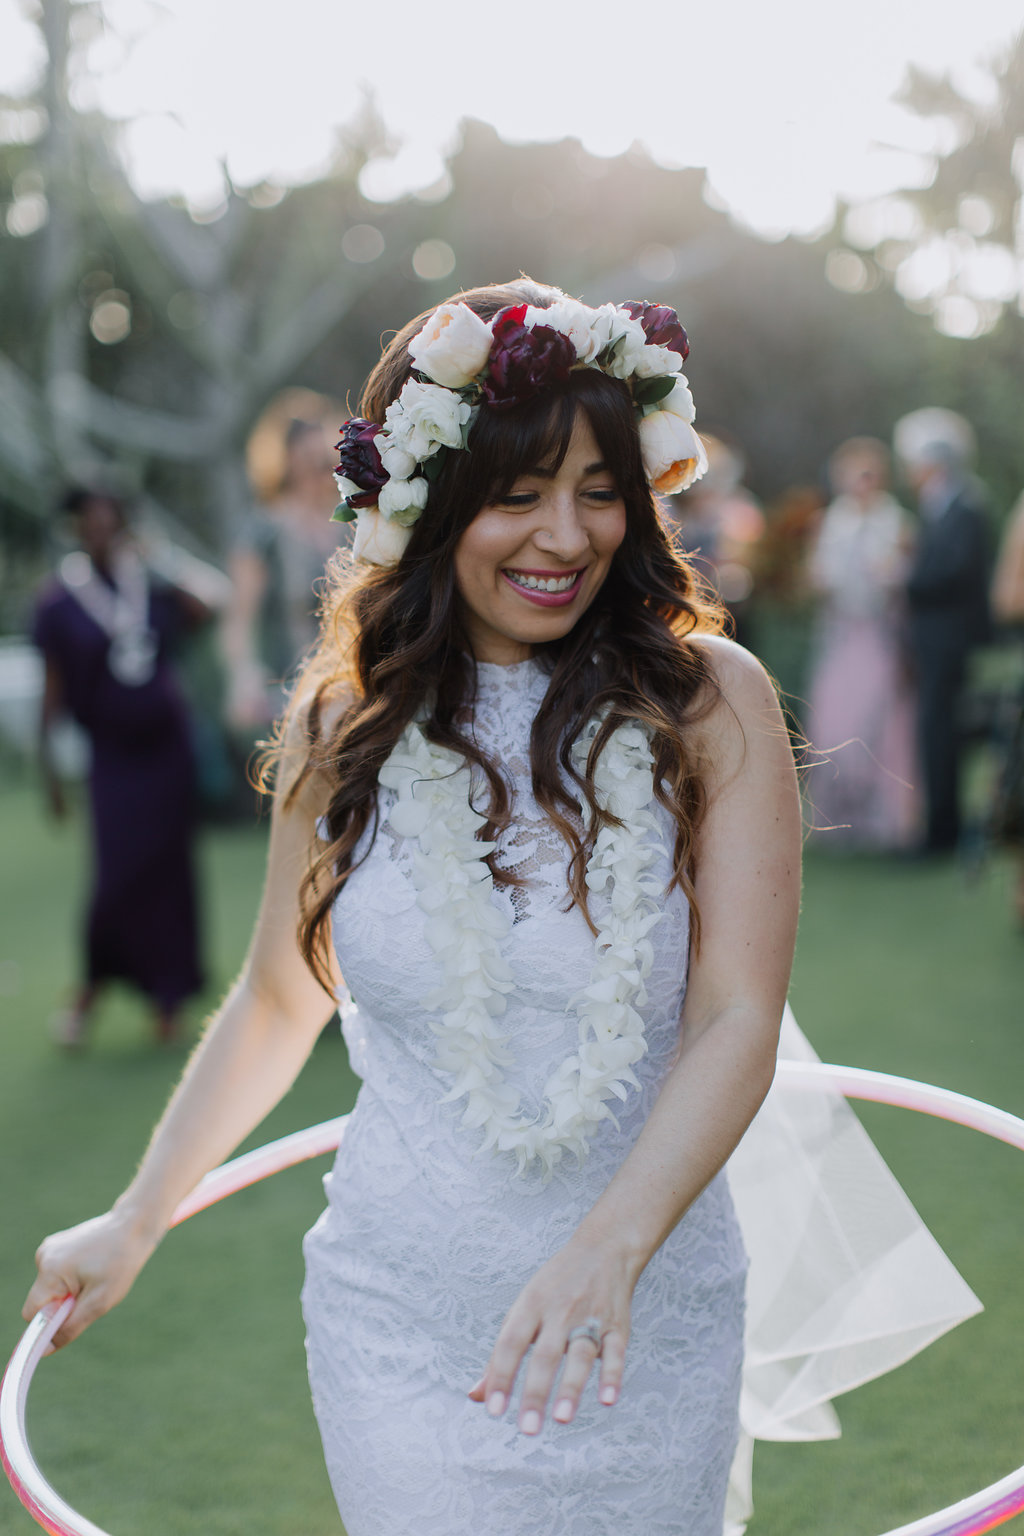 The Hula Hoop Girl is The Hula Hooping Bride! - The Hula Hoop Girl (Website,FB&@thehulahoopgirl) of Elemental Hoopdanceis a most beautiful hula hoop bride in this stunning photo from her recent wedding. Congratulations Caroline Cárdenas! She lives in La Jolla, California, USA. Photo by Cadencia Photography.